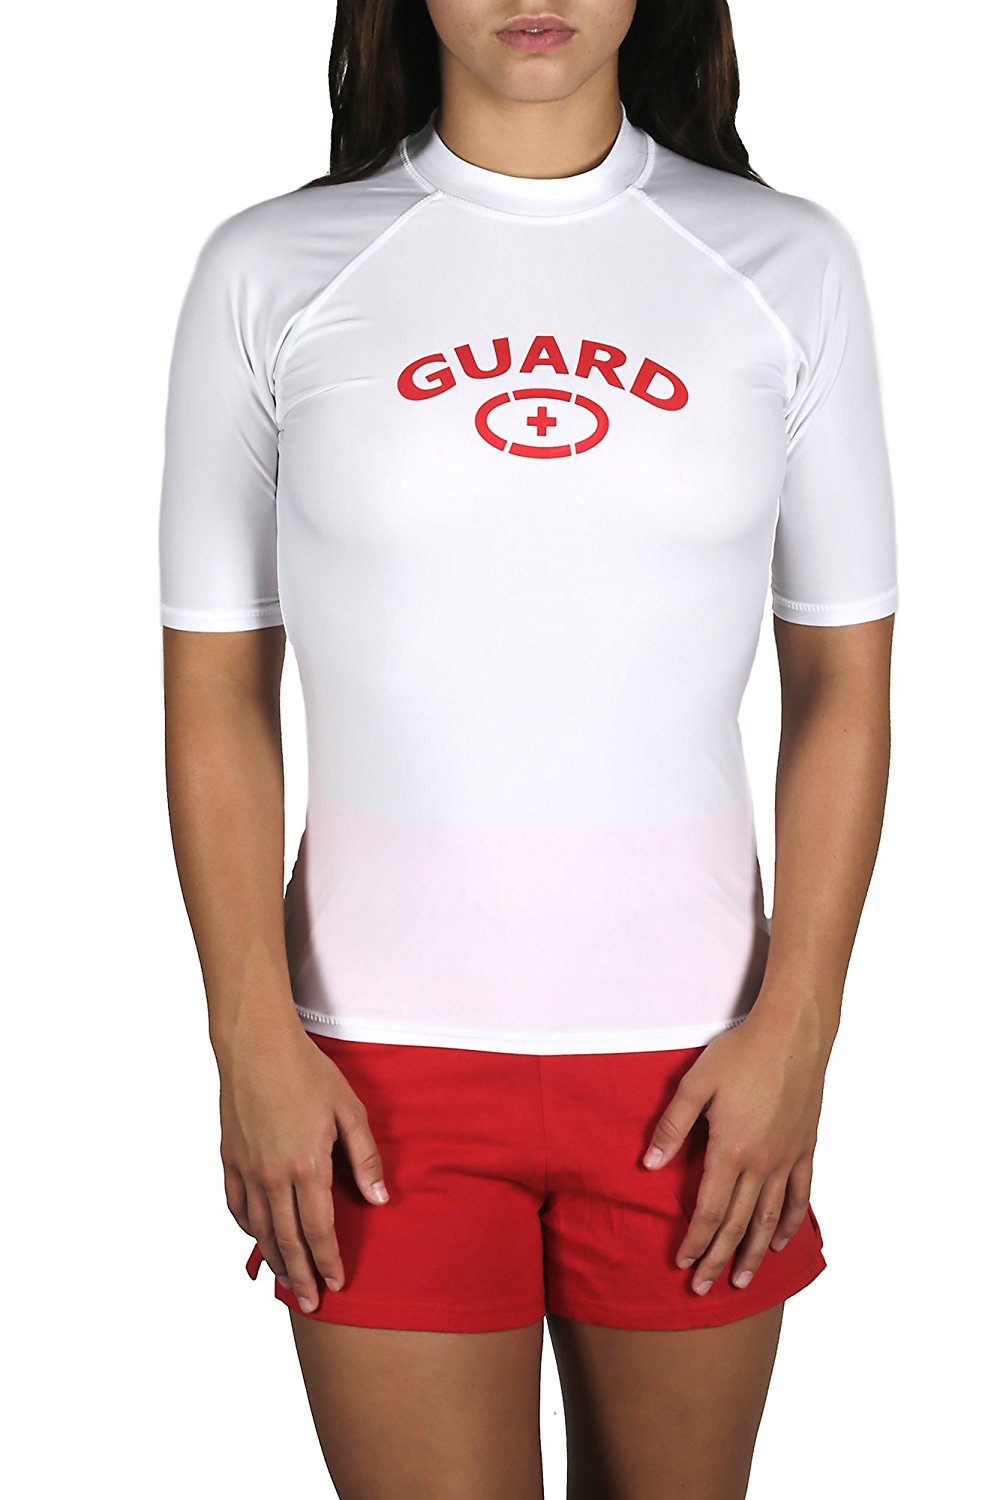 Adoretex Women's Guard Short Sleeve Rashguard UPF 50+ Swim Shirt